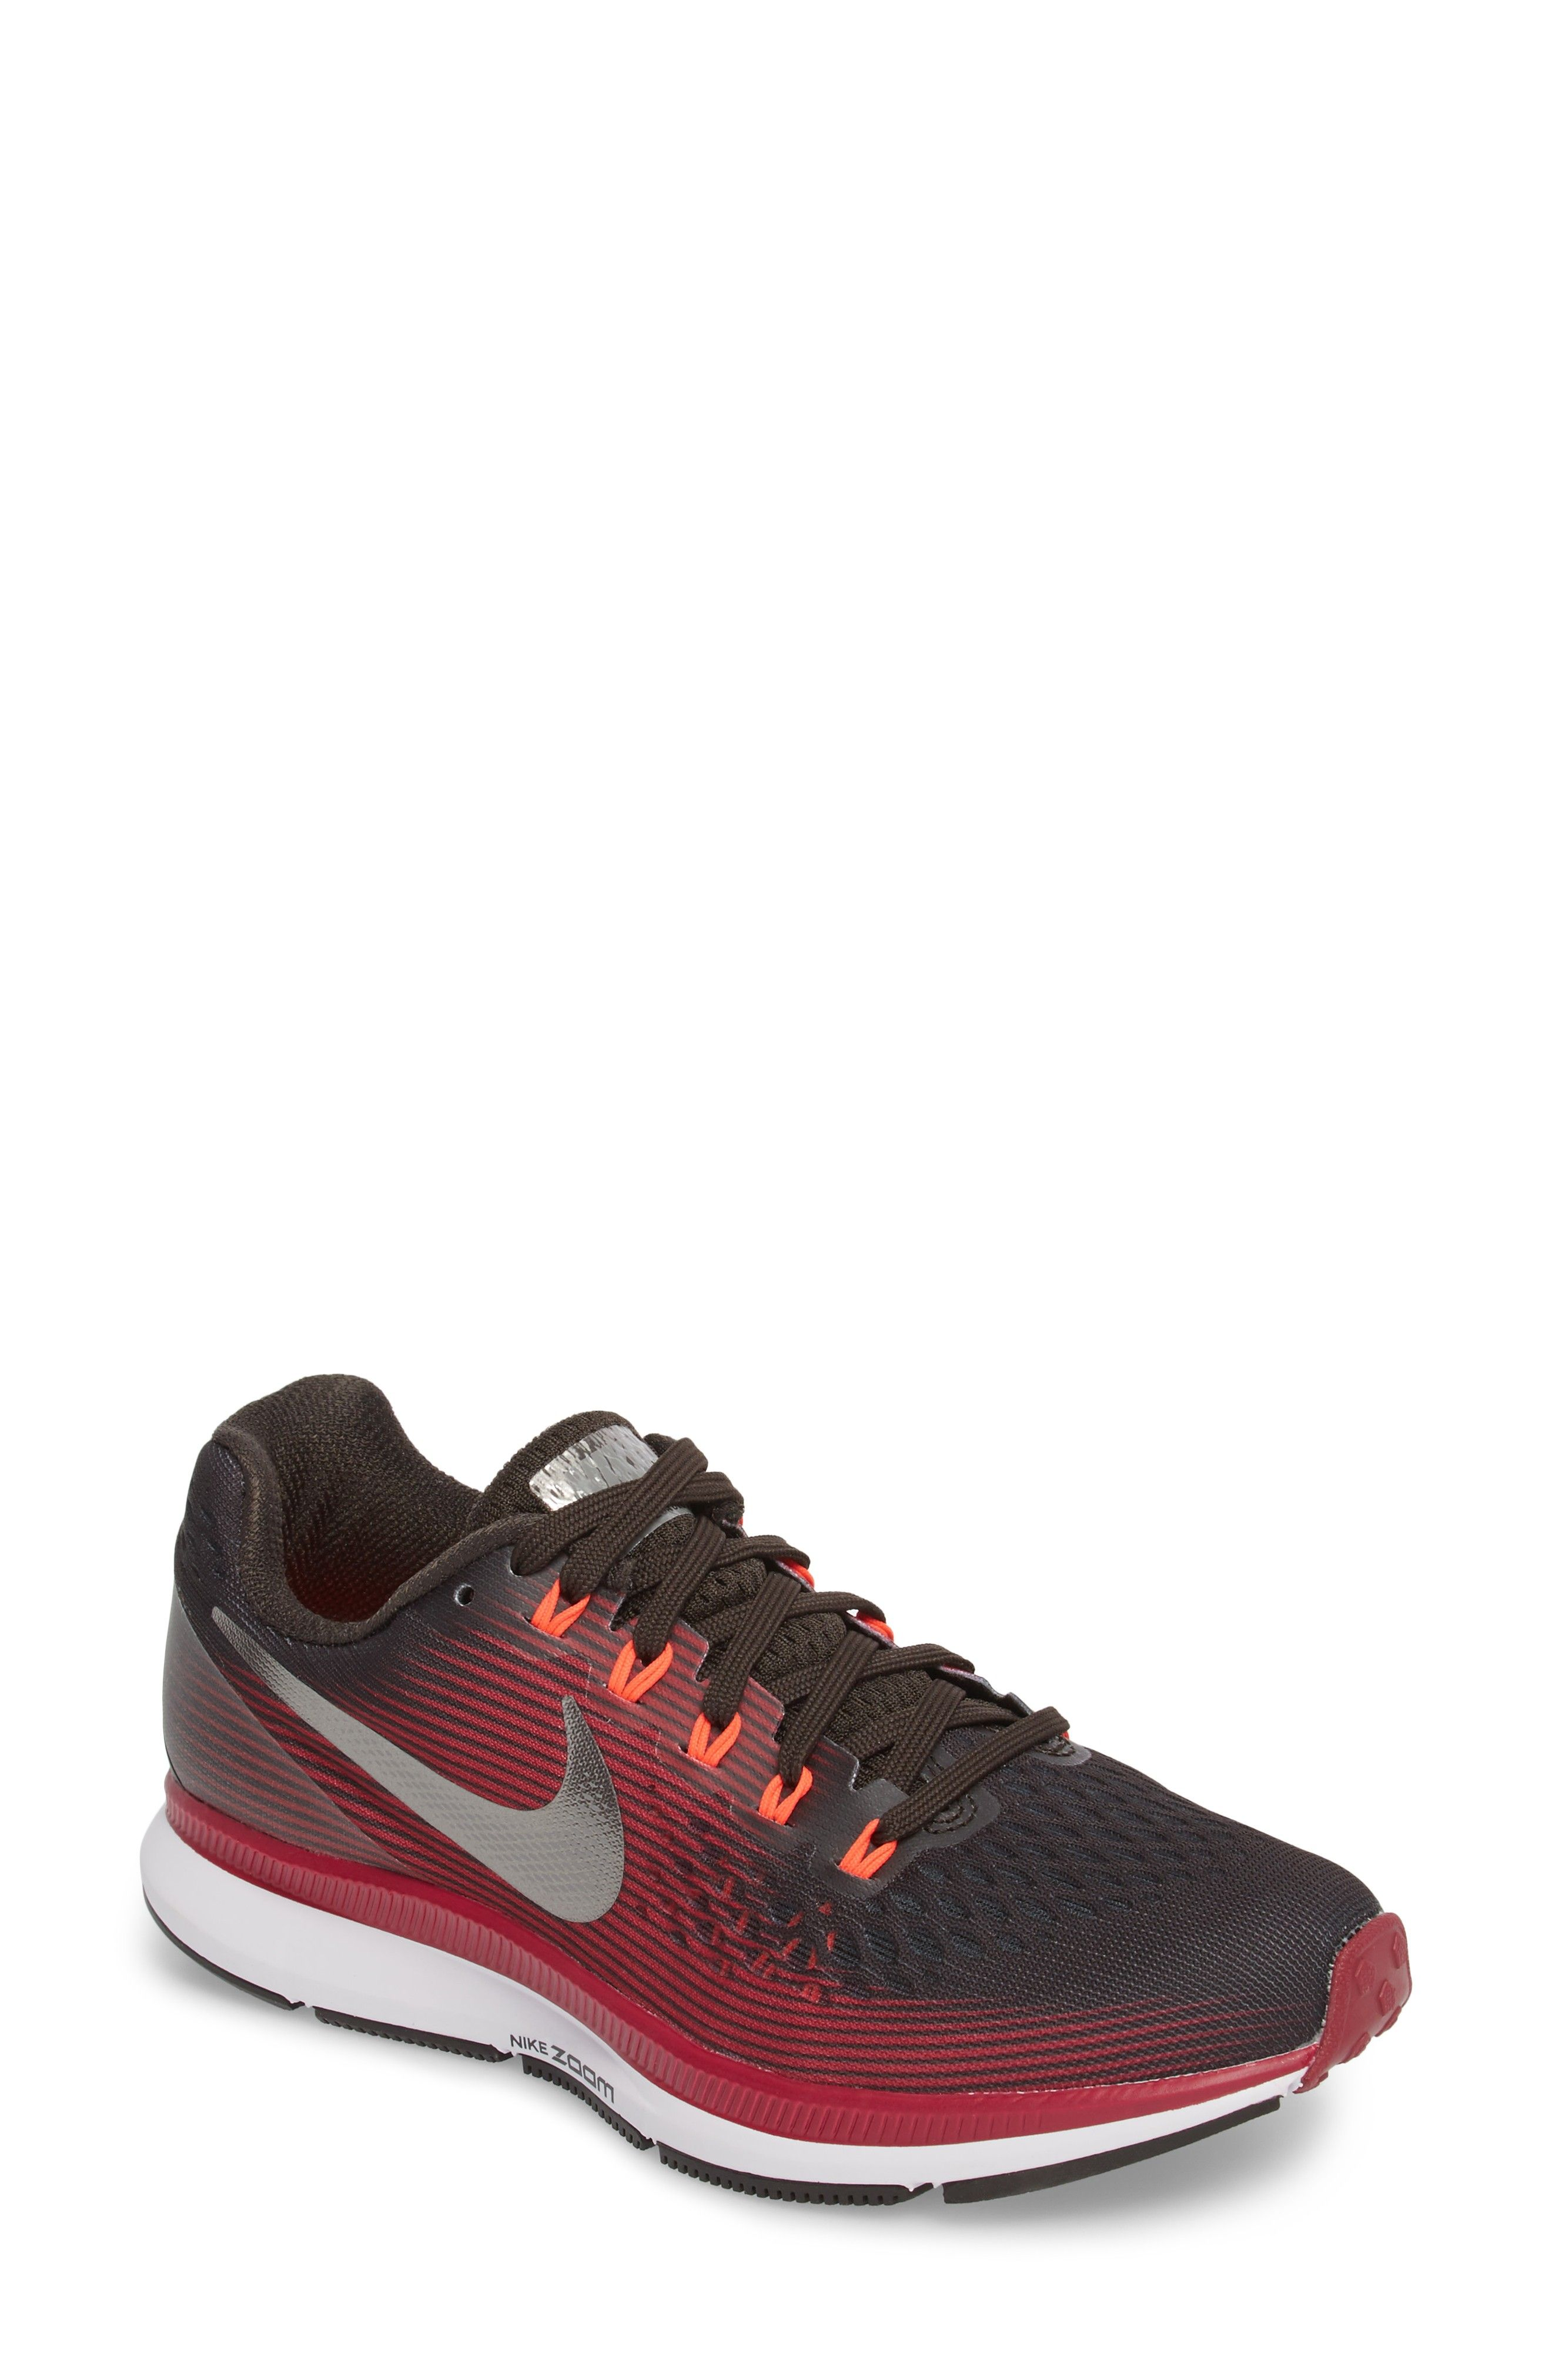 the best attitude f8cae bf5d9 NIKE | Air Zoom Pegasus 34 Gem Running Shoe #Shoes #Athletic ...